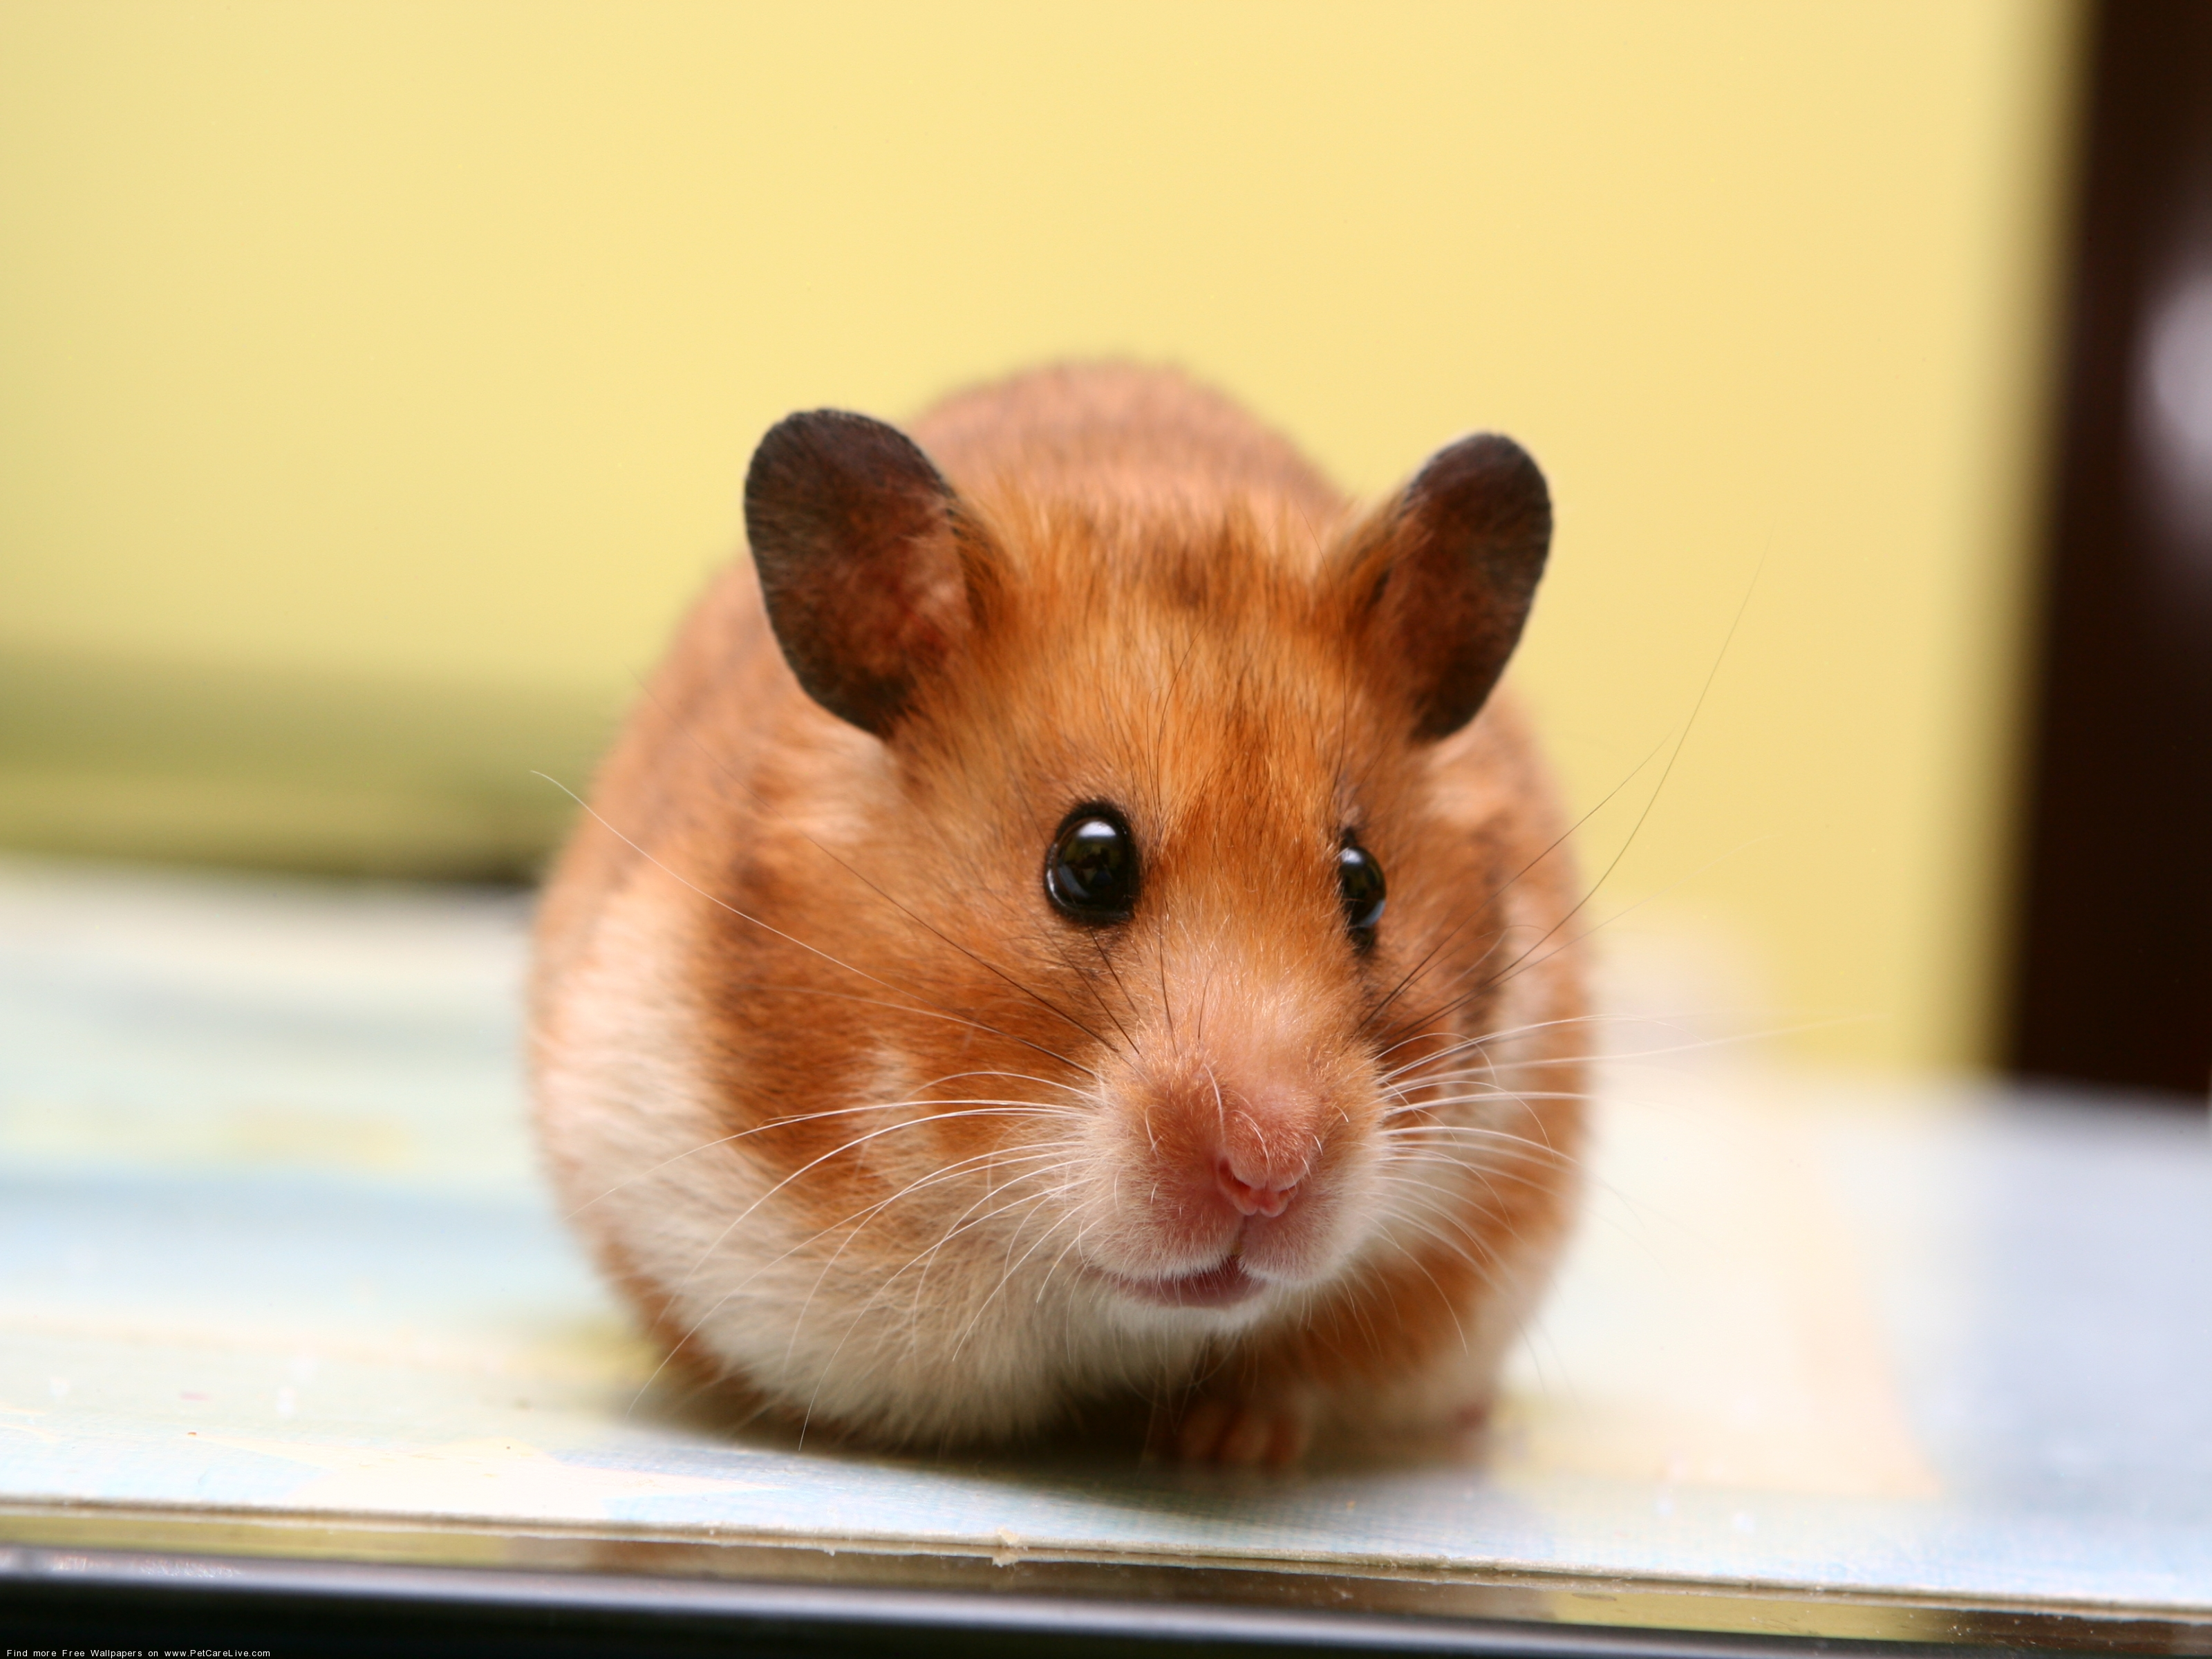 The Hamster computer wallpaper pictures for PC computer 2 3200x2400